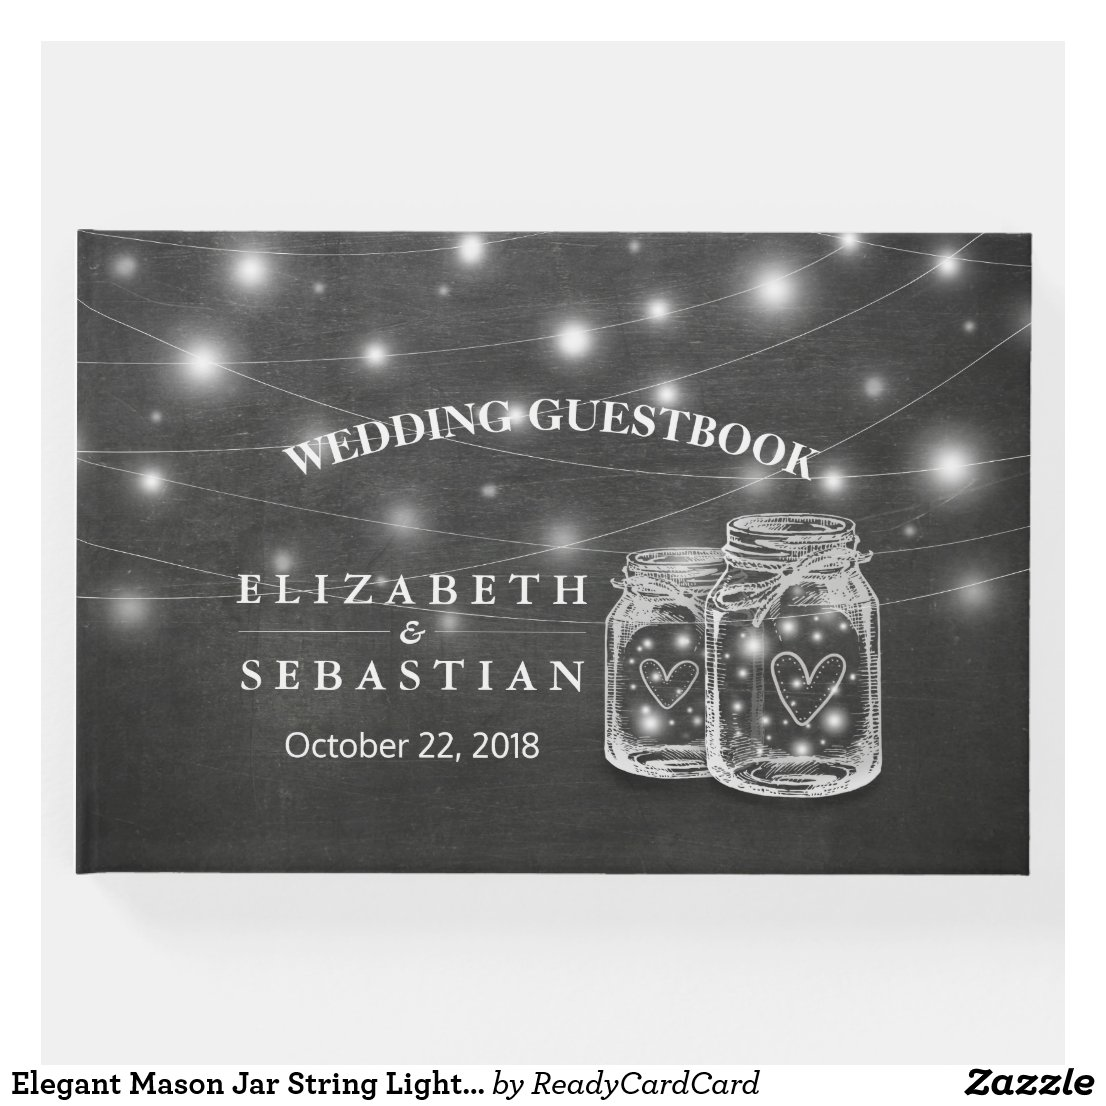 Elegant Mason Jar String Lights Chalkboard Wedding Guest Book